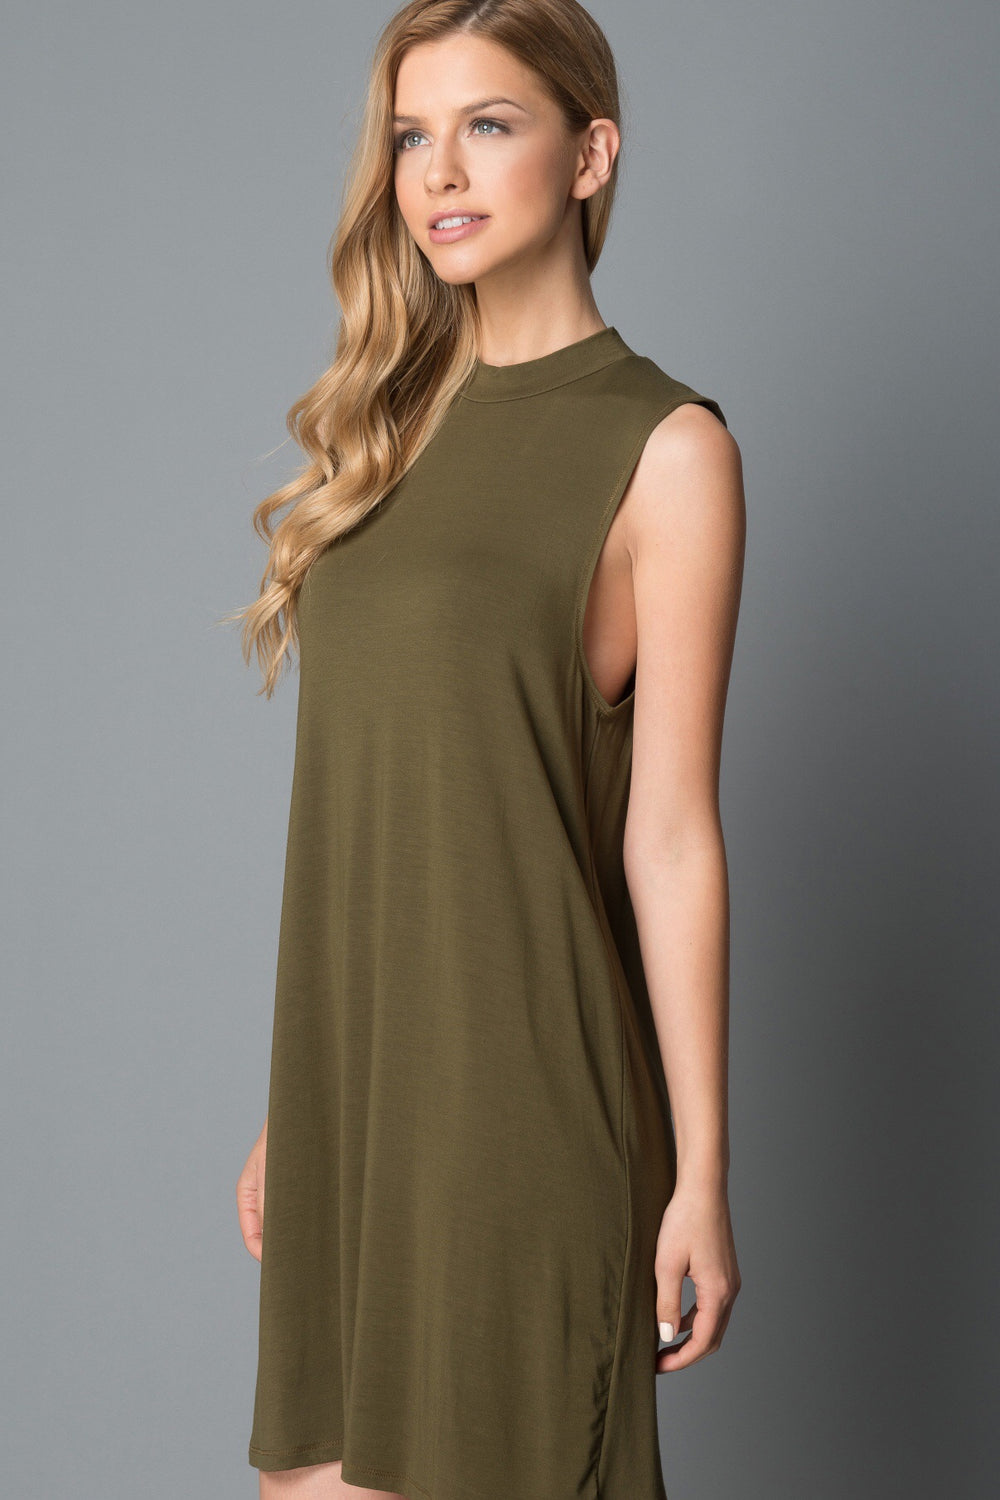 Noelle Sleeveless Mockneck Dress in Olive